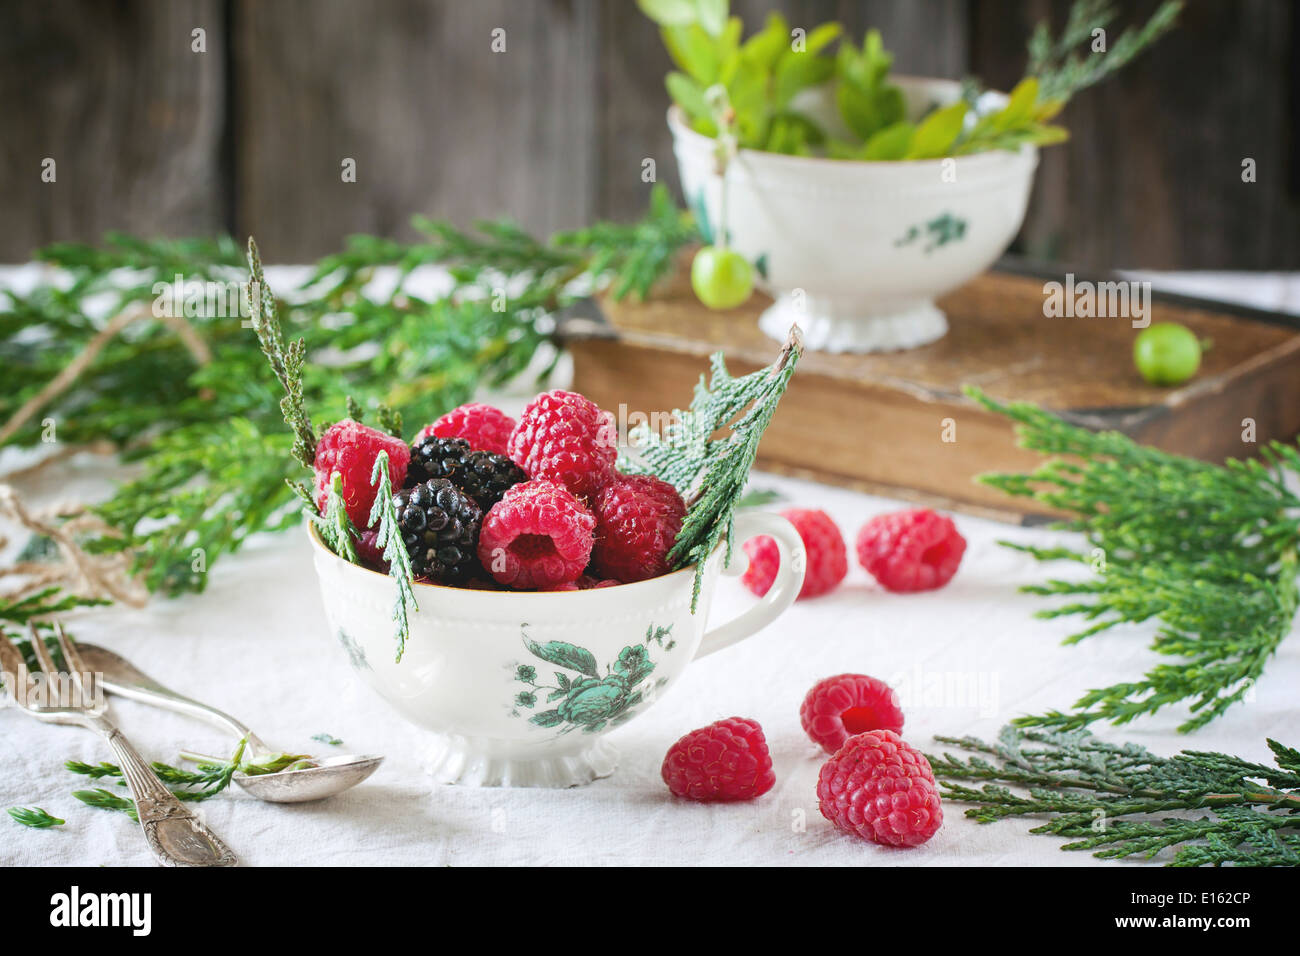 Vintage cup of raspberries and blackberries served with thuja branches and old book on the table. - Stock Image